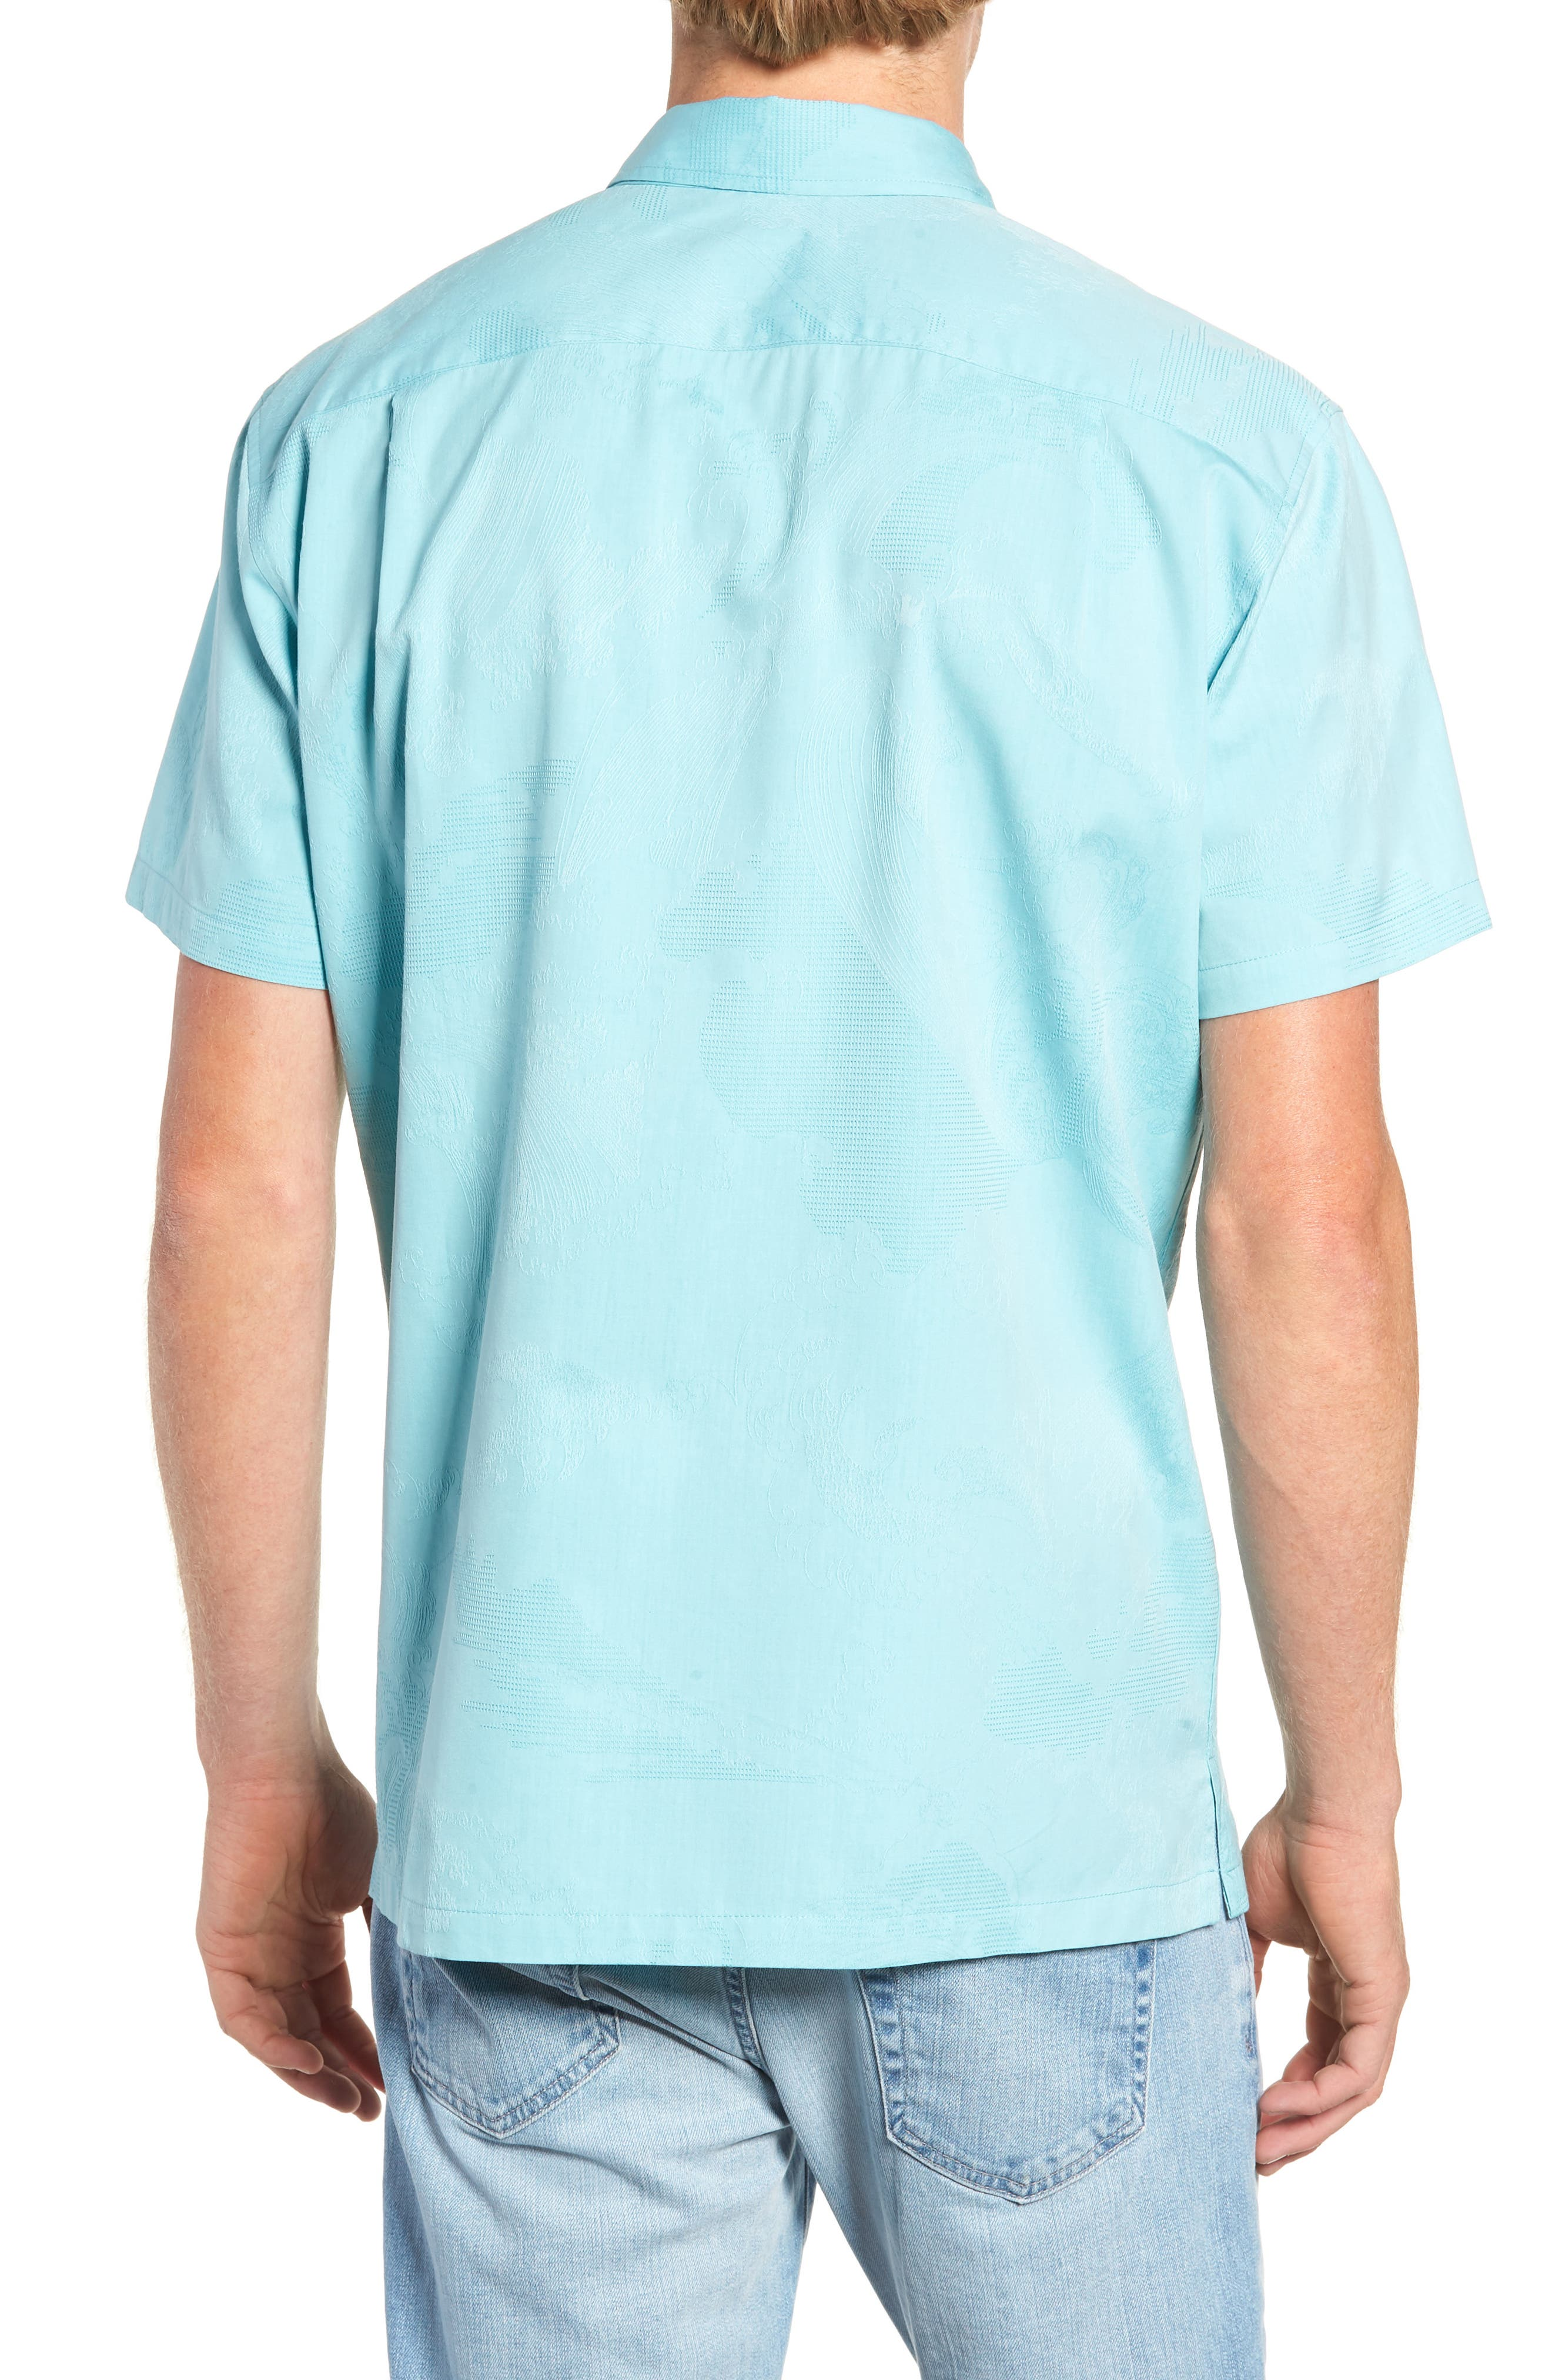 Seas the Day Trim Fit Camp Shirt,                             Alternate thumbnail 4, color,                             Surf